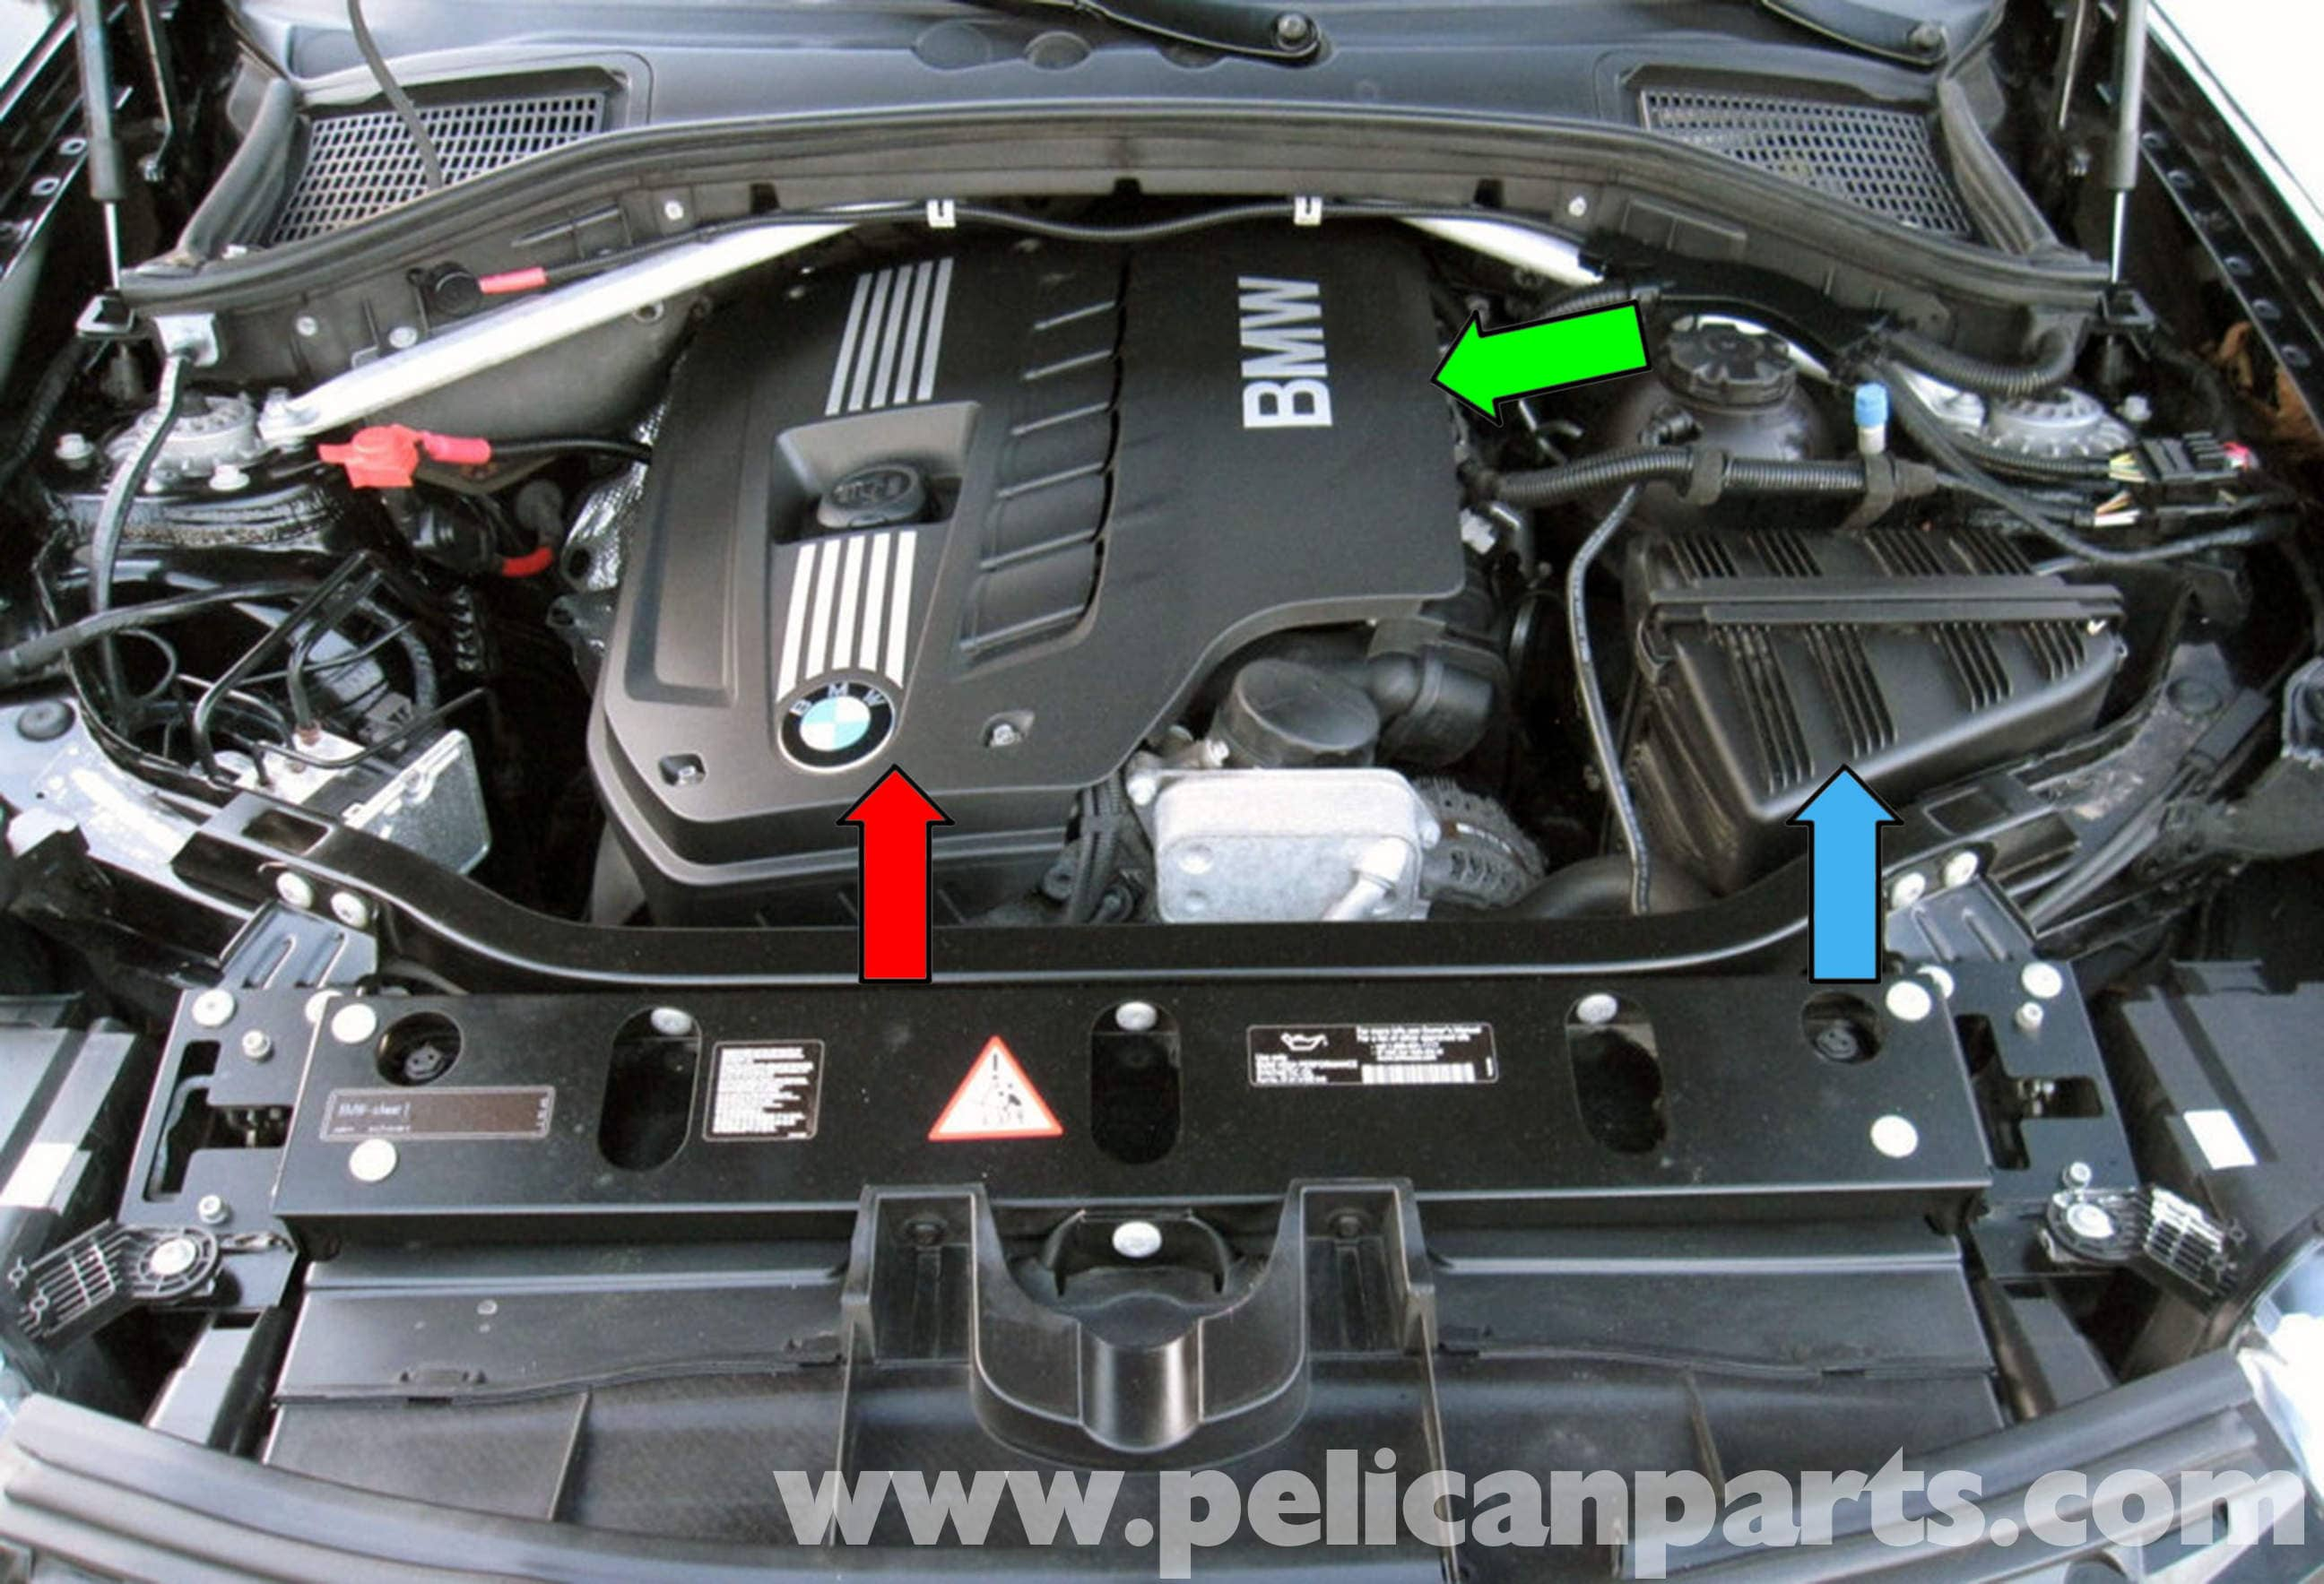 pelican technical article bmw x3 engine management systems. Black Bedroom Furniture Sets. Home Design Ideas